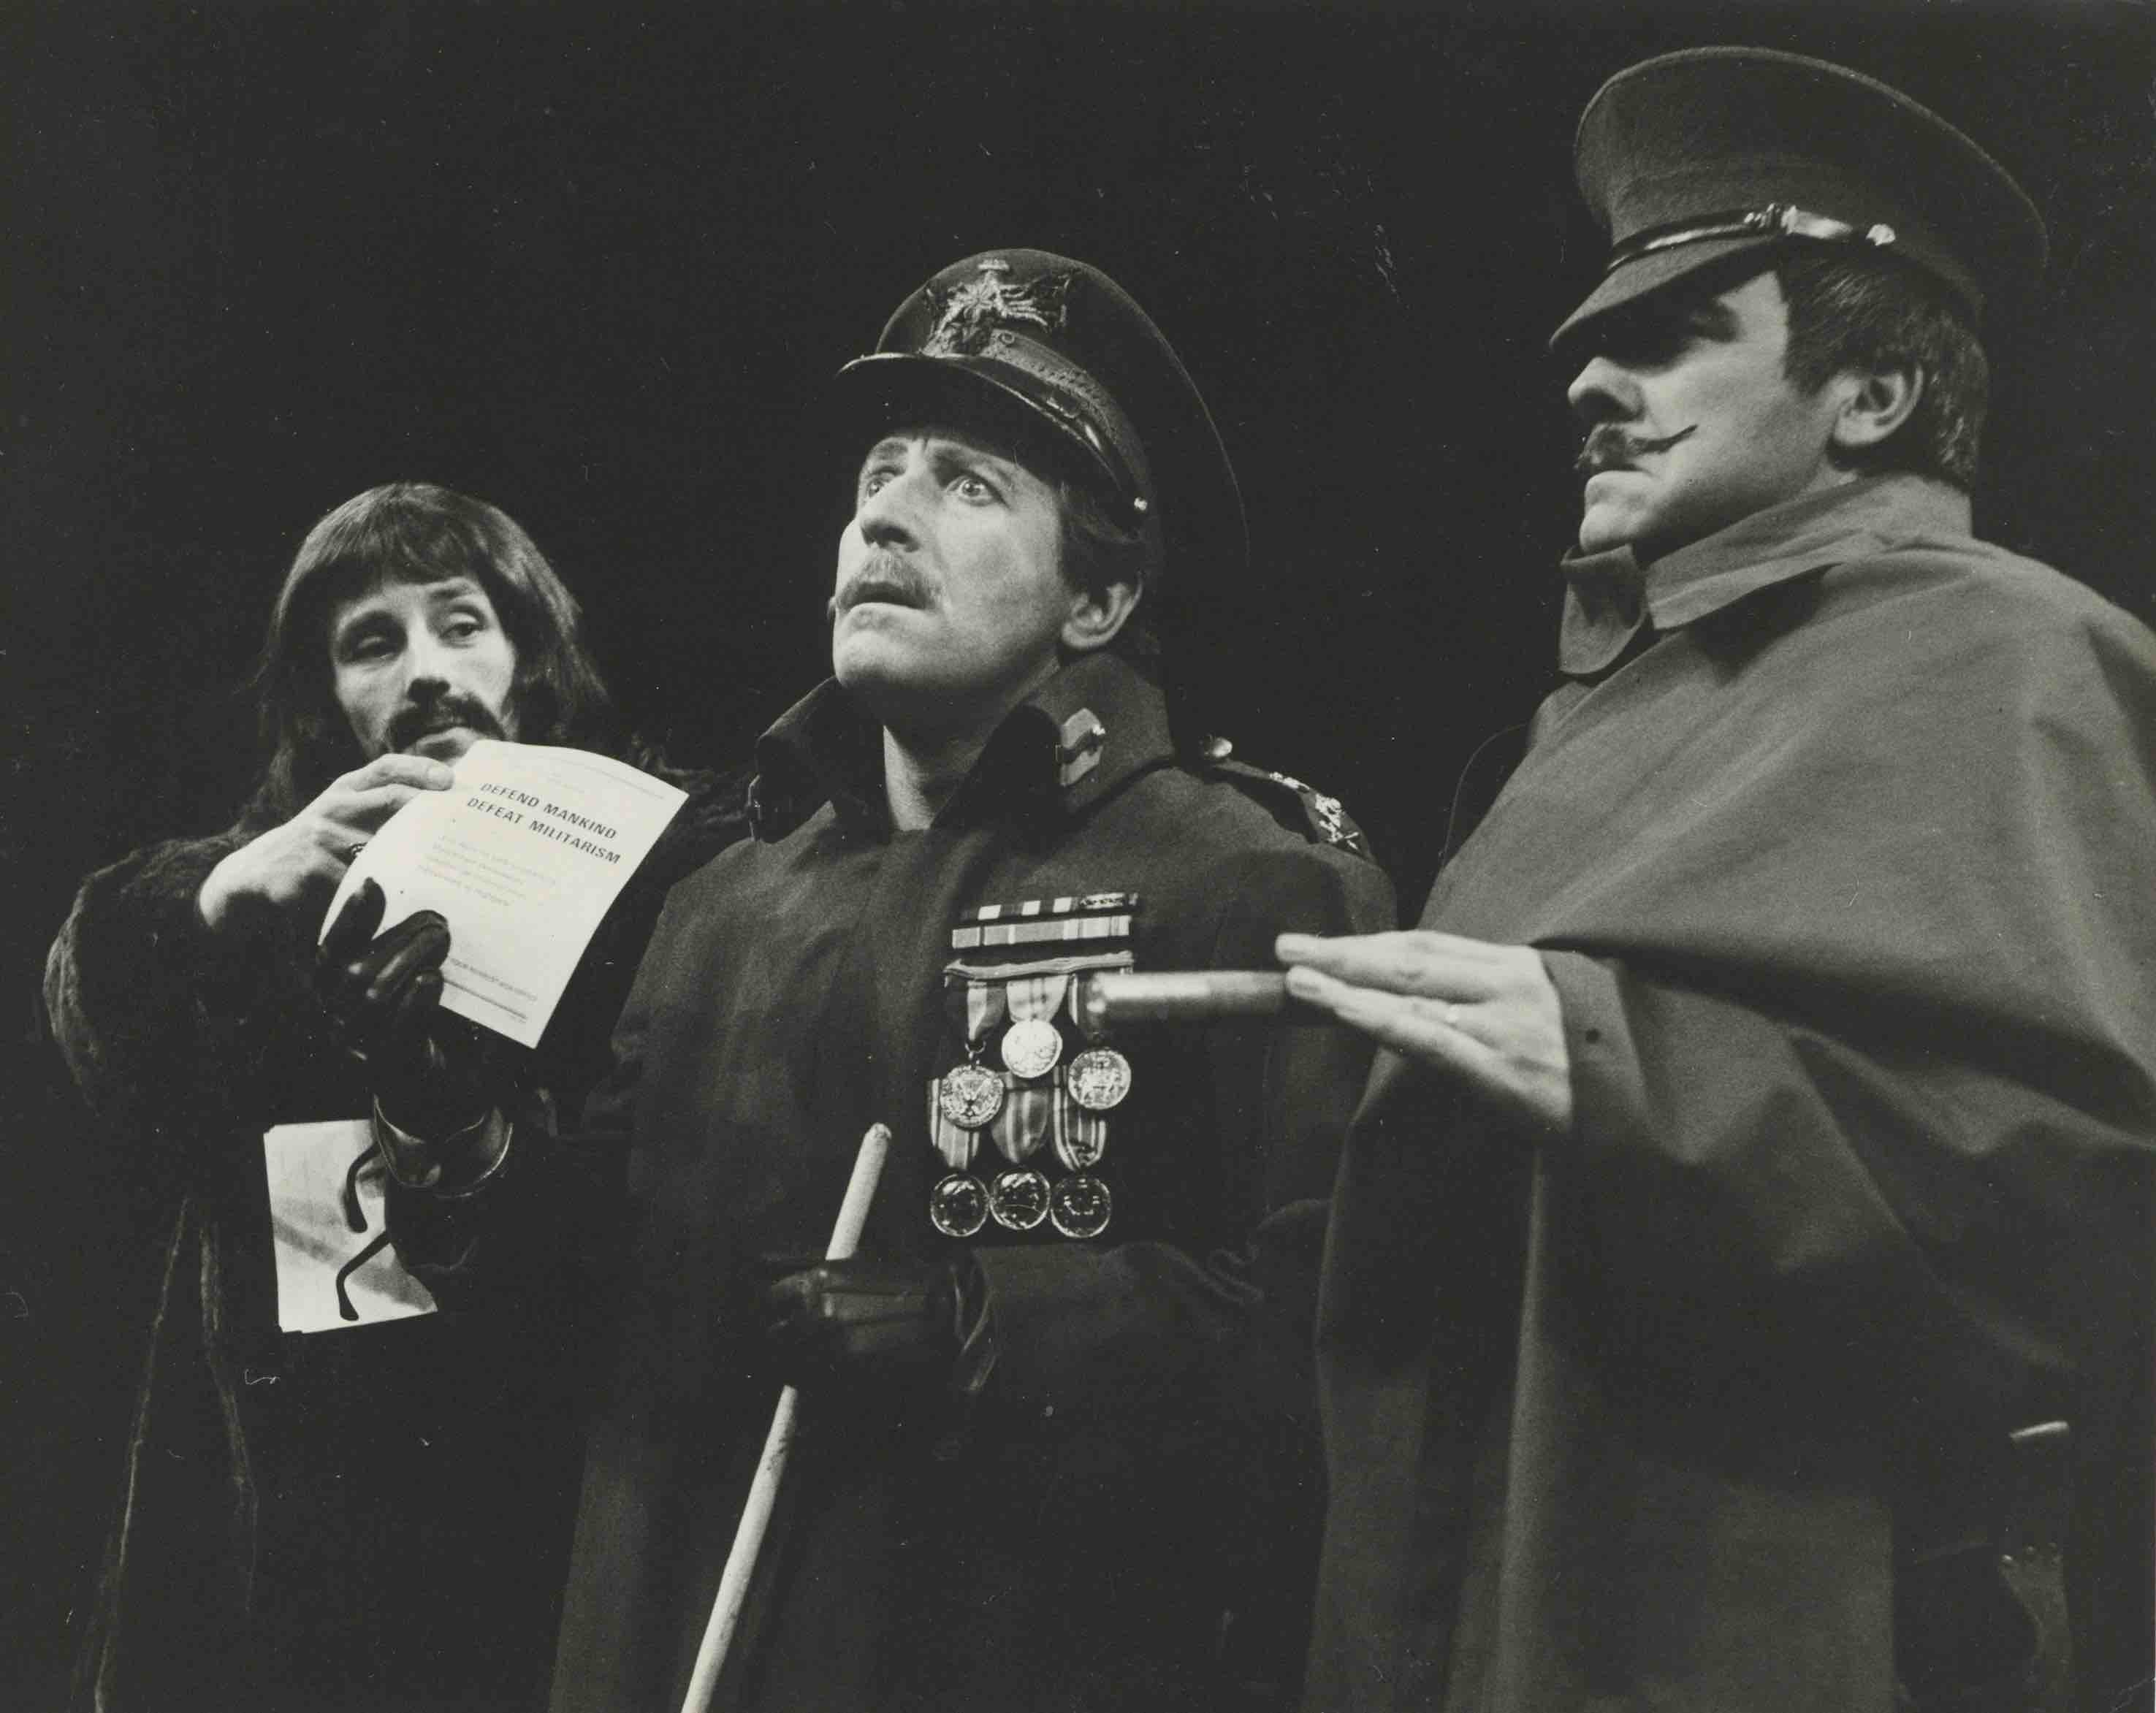 Production photograph - The Unknown Soldier and his Wife - Michael Burrell, Clive Revill, Mark Kingston - Photographer John Timbers - WSRO - Dimensions unknown